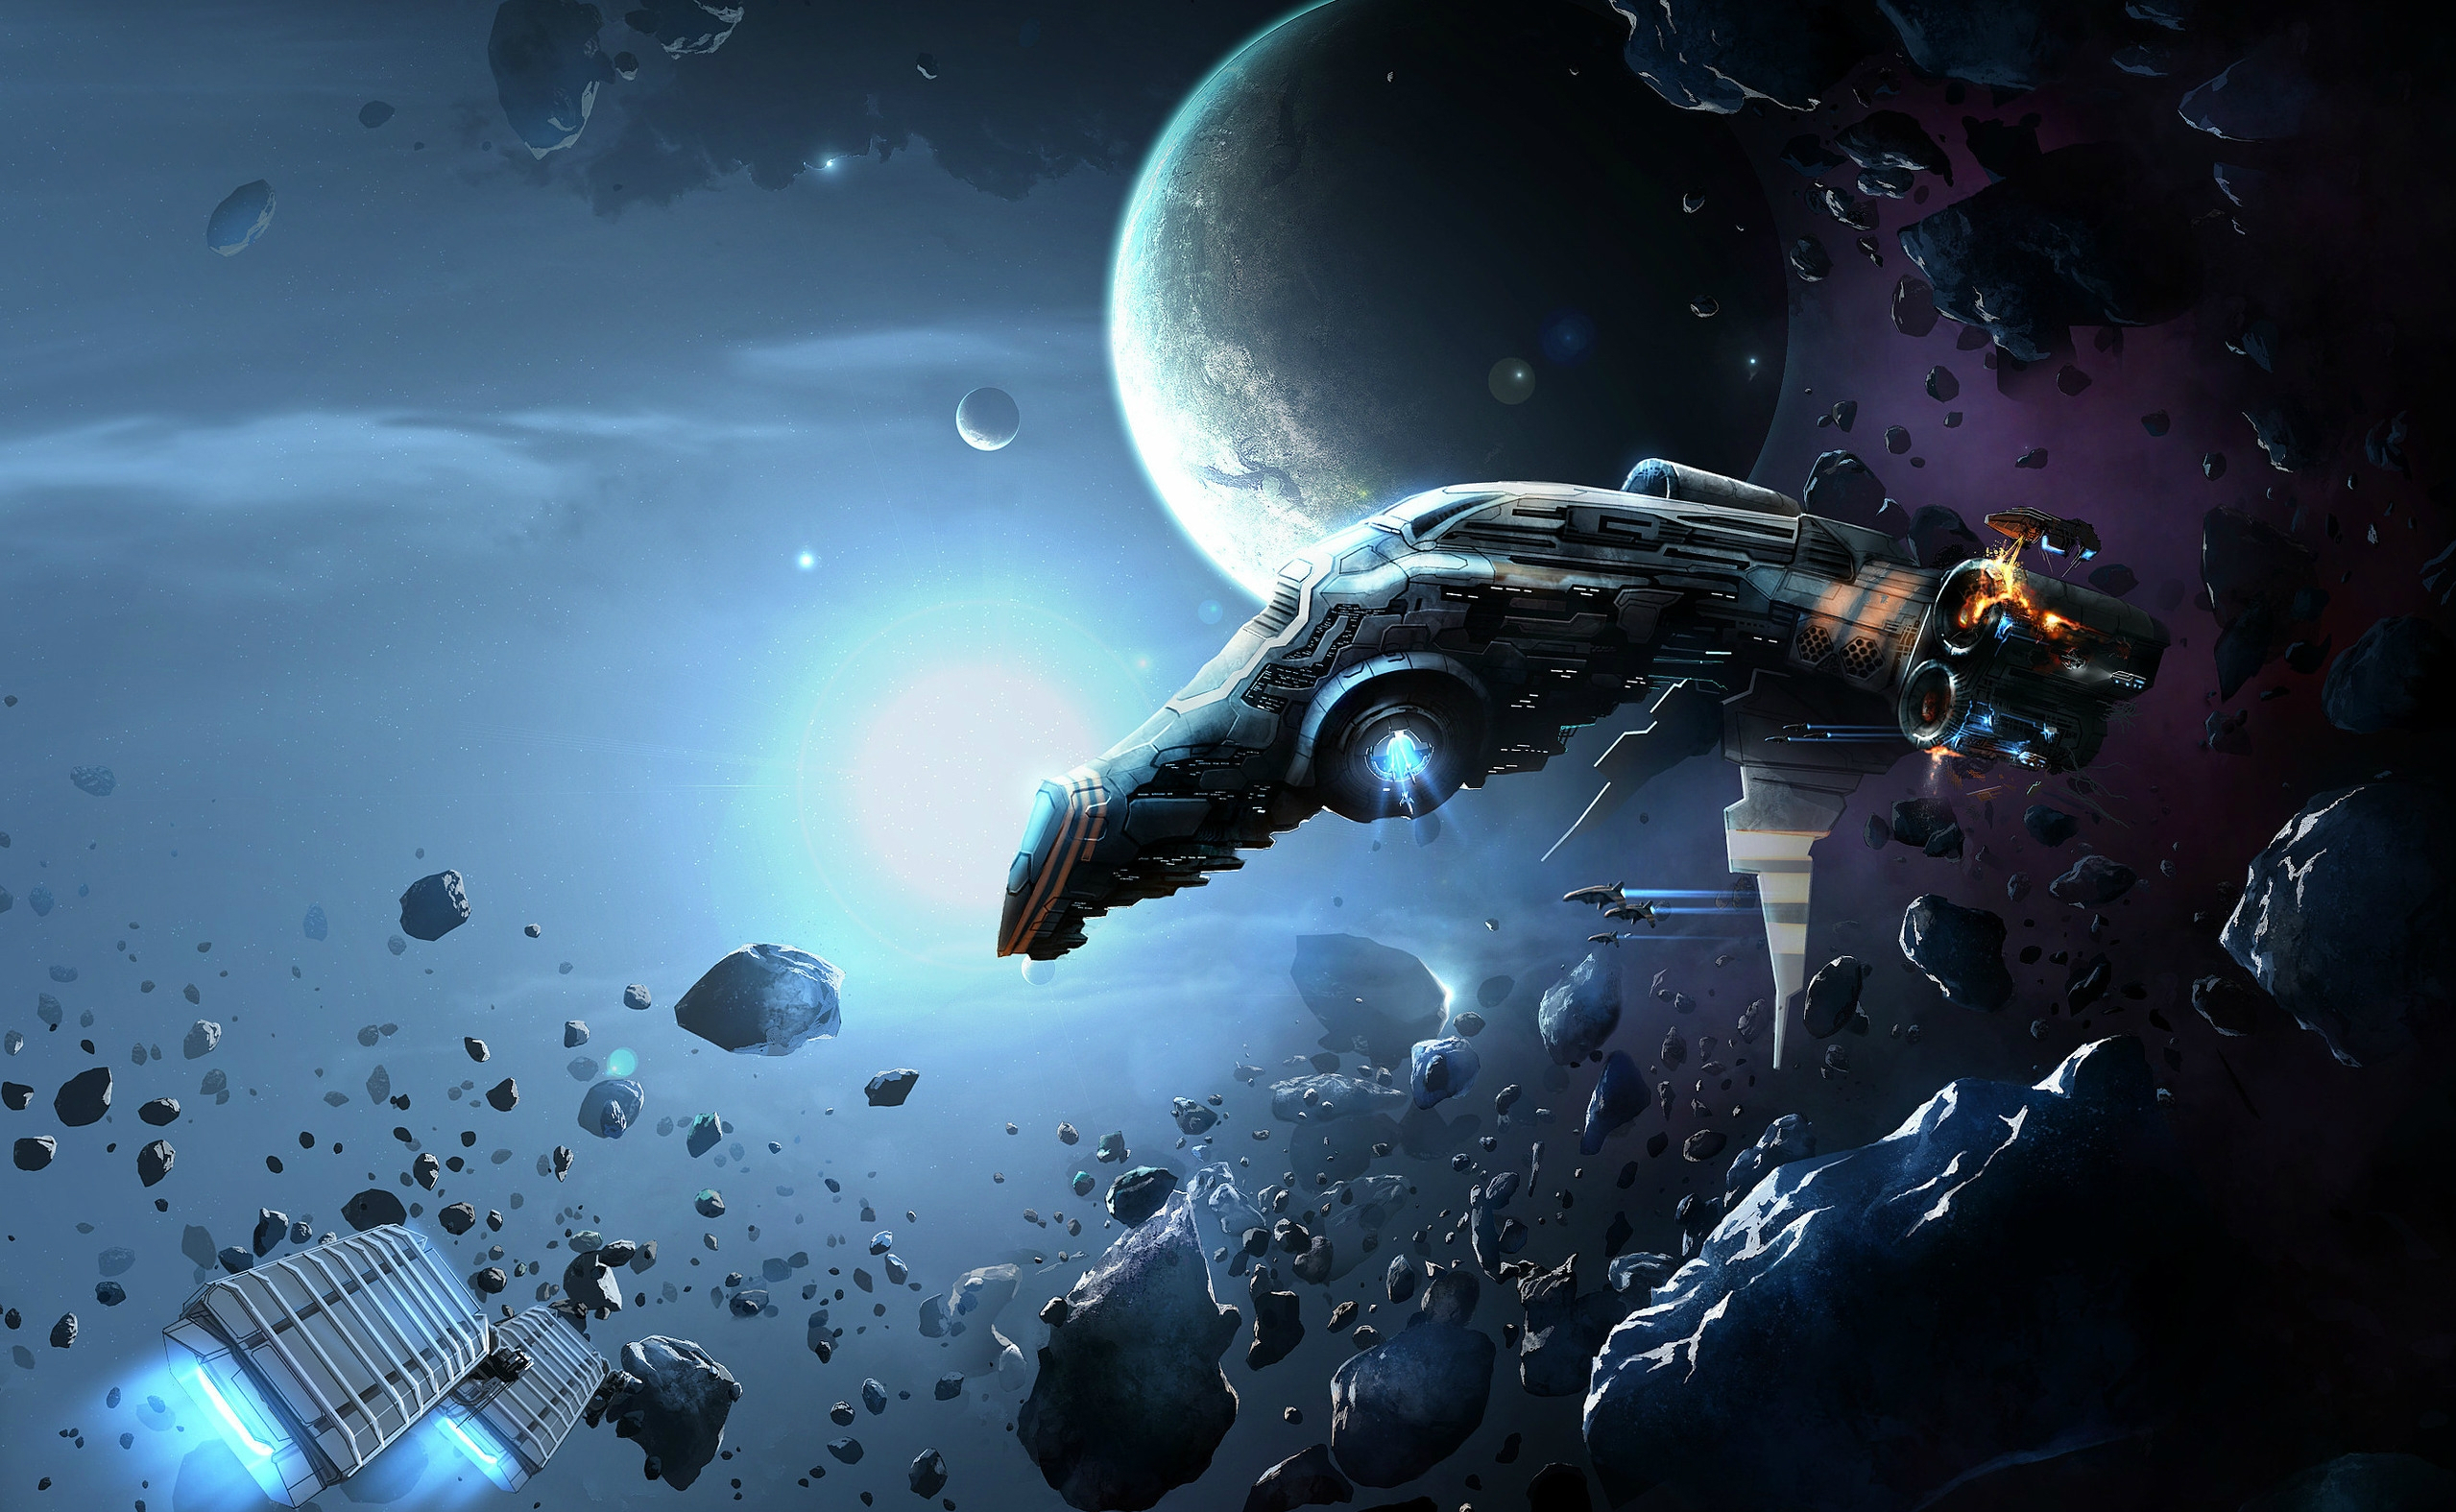 Galaxy Wars EVE Online Game Review - Galaxy Wars